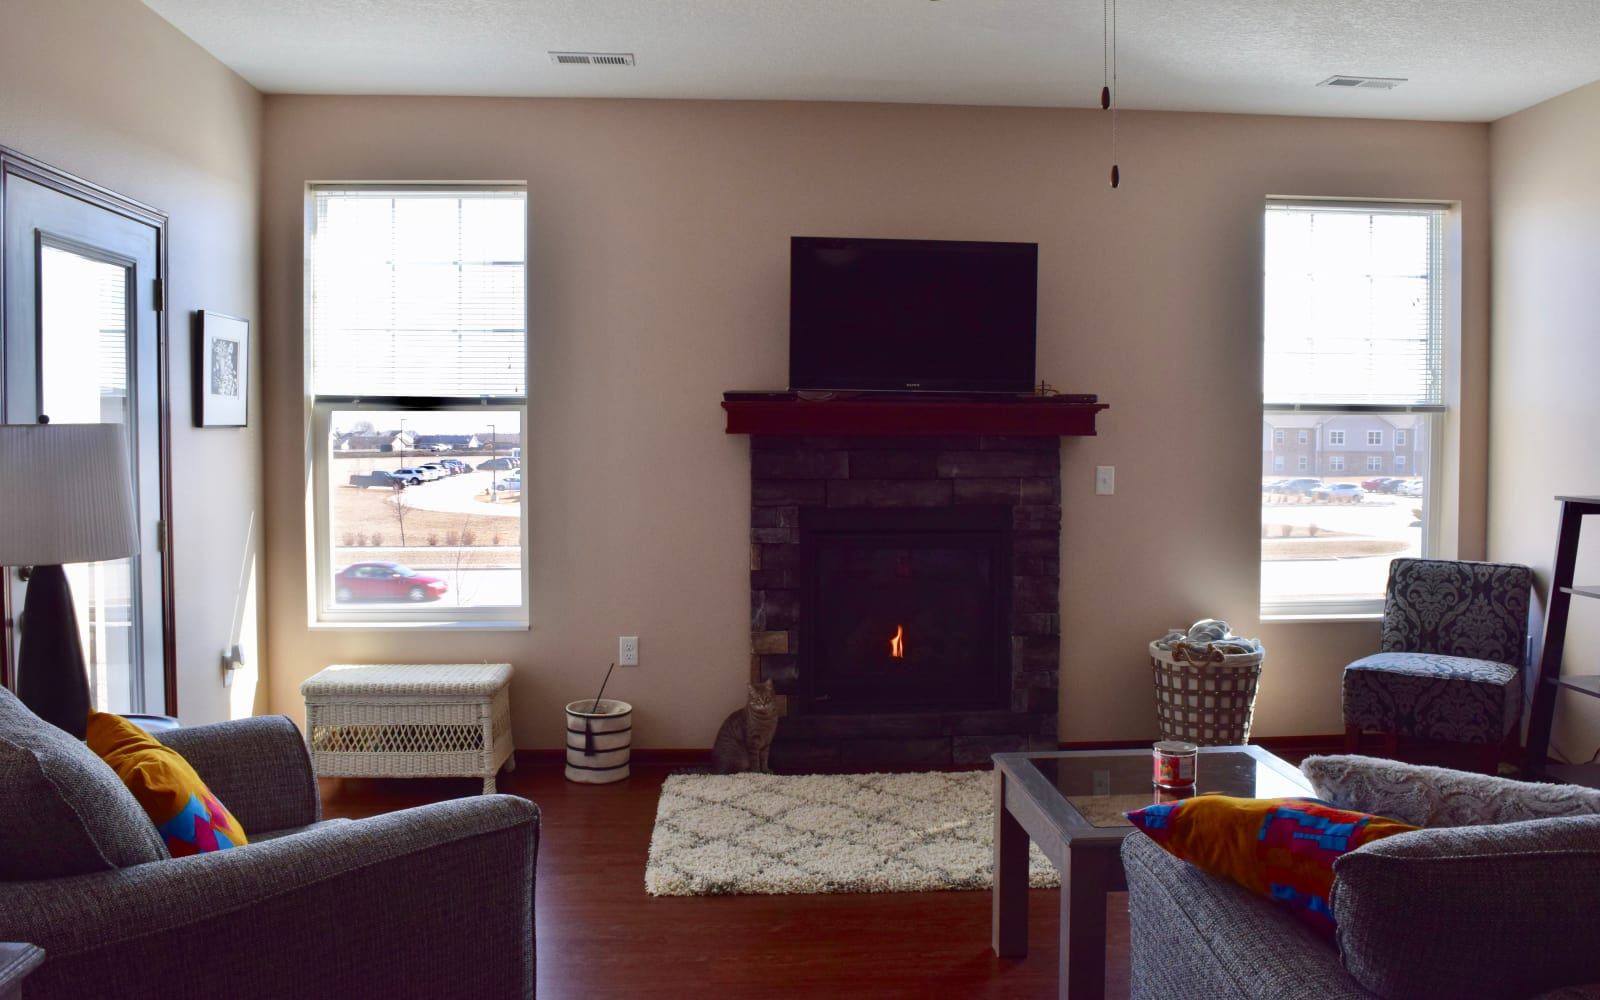 Well decorated living room with a cat next to the fireplace at Ironwood in Altoona, Iowa